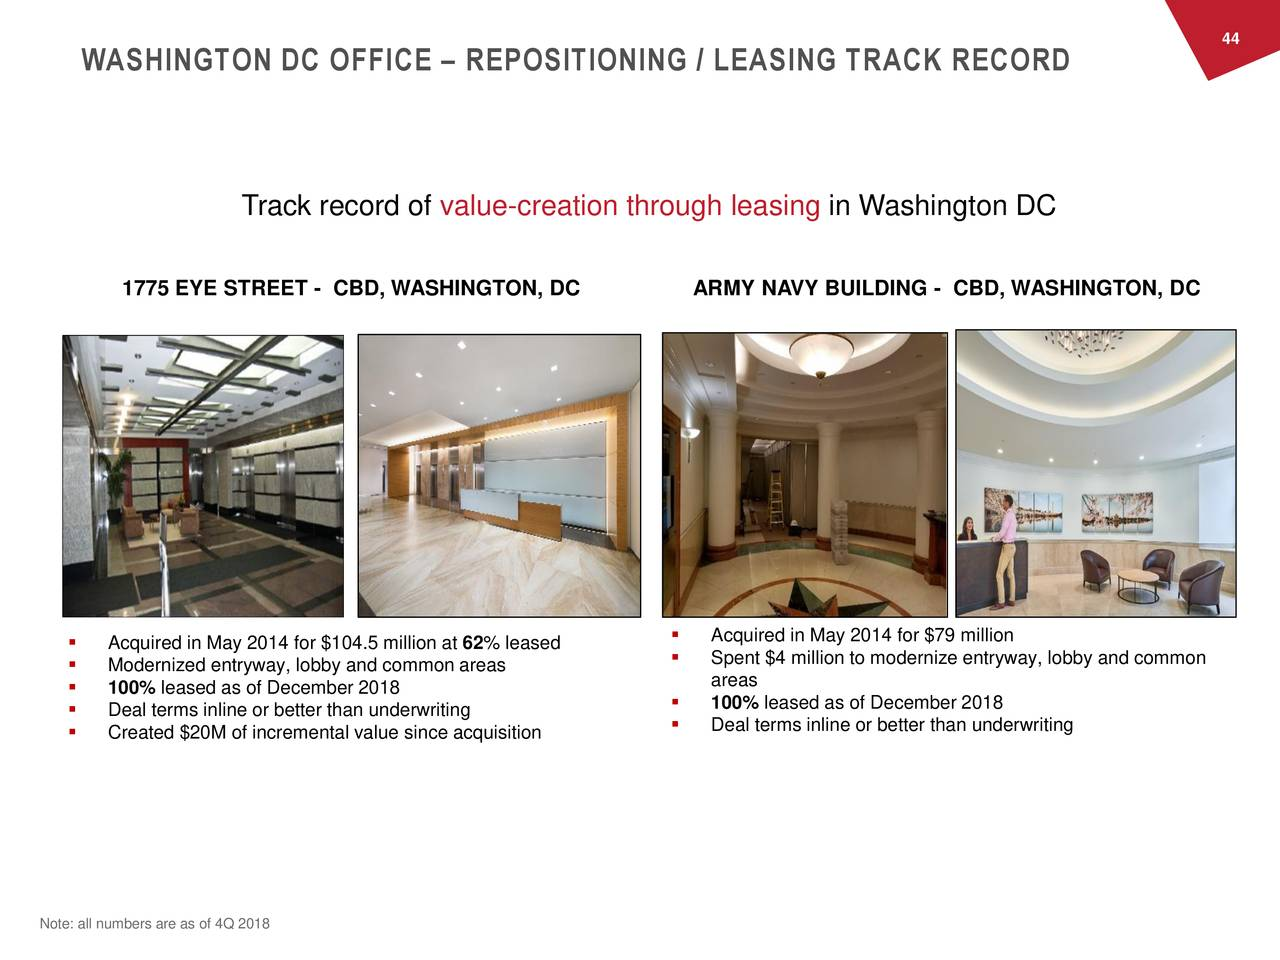 WASHINGTON DC OFFICE – REPOSITIONING / LEASING TRACK RECORD THE DC METRO REGION Where to be in DC Track record of value-creation through leasing in Washington DC 1775 EYE STREET - CBD, WASHINGTON, DC ARMY NAVY BUILDING - CBD, WASHINGTON, DC  Acquired in May 2014 for $104.5 million at 62% leased  Acquired in May 2014 for $79 million  Spent $4 million to modernize entryway, lobby and common  Modernized entryway, lobby and common areas areas  100% leased as of December 2018  100% leased as of December 2018  Deal terms inline or better than underwriting  Created $20M of incremental value since acquisition  Deal terms inline or better than underwriting Note: all numbers are as of 4Q 2018